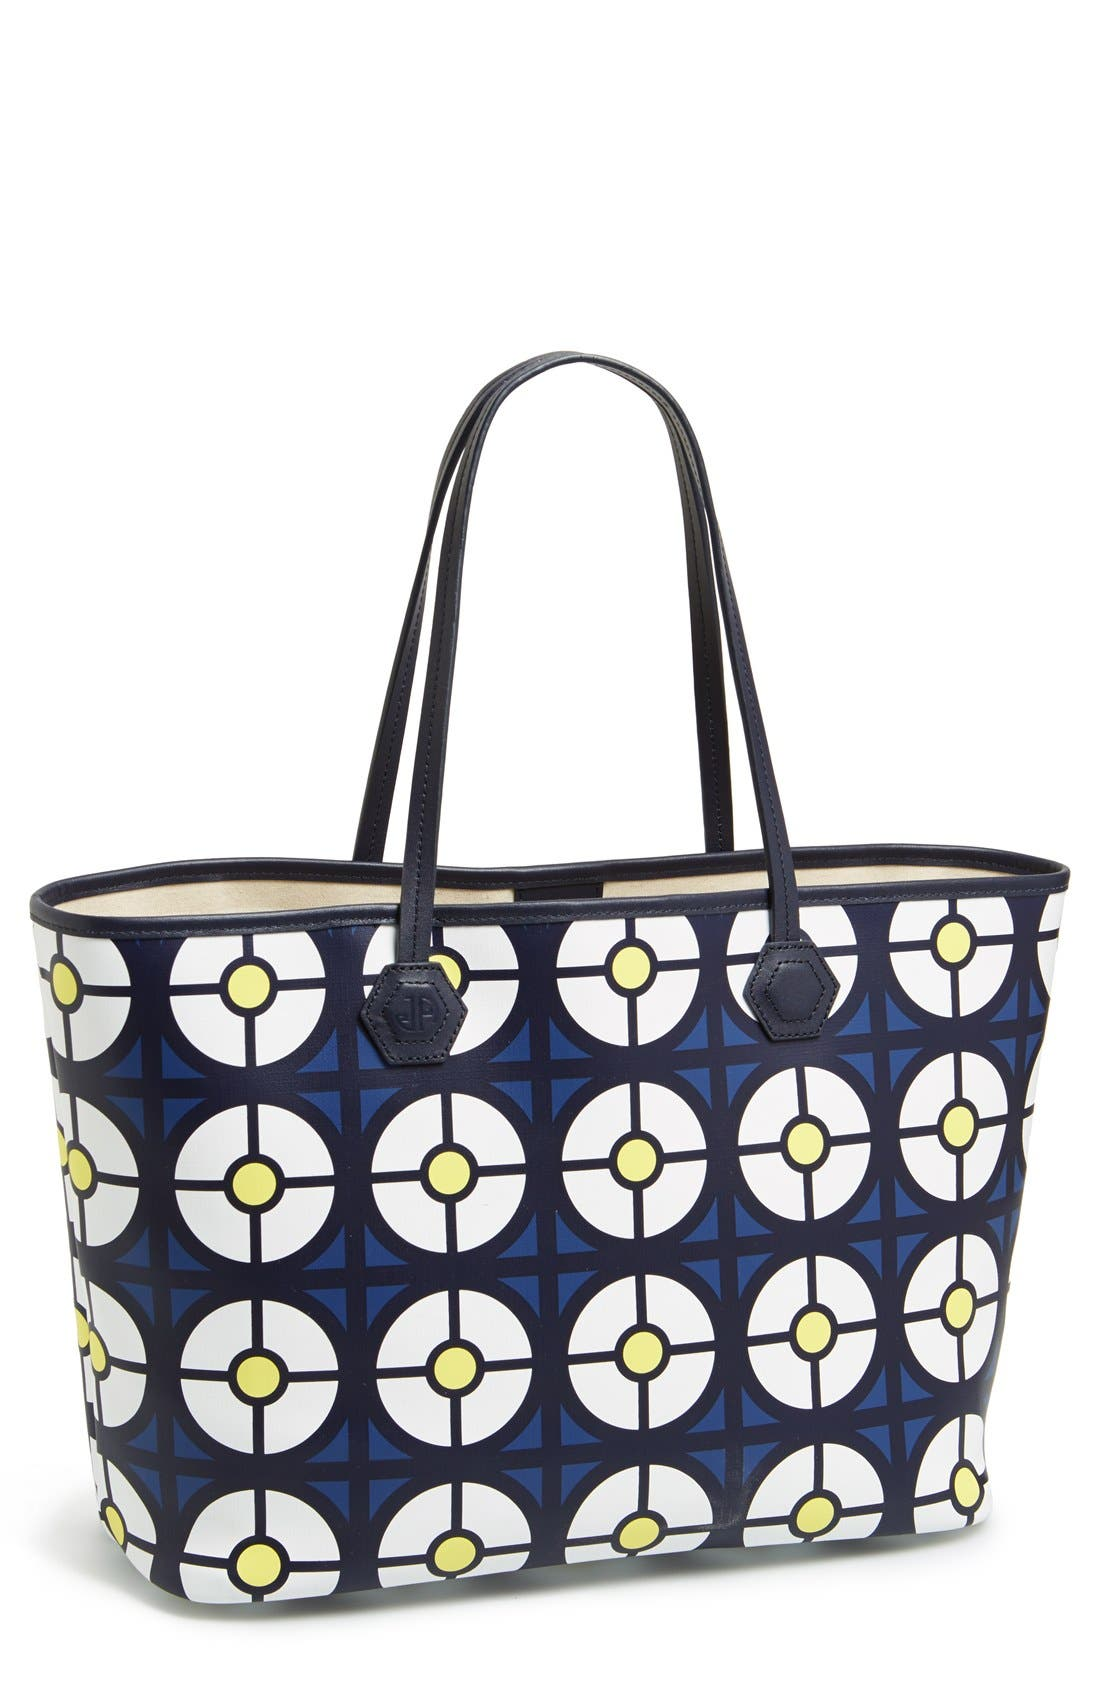 Main Image - Jonathan Adler 'Medium Duchess' Tote